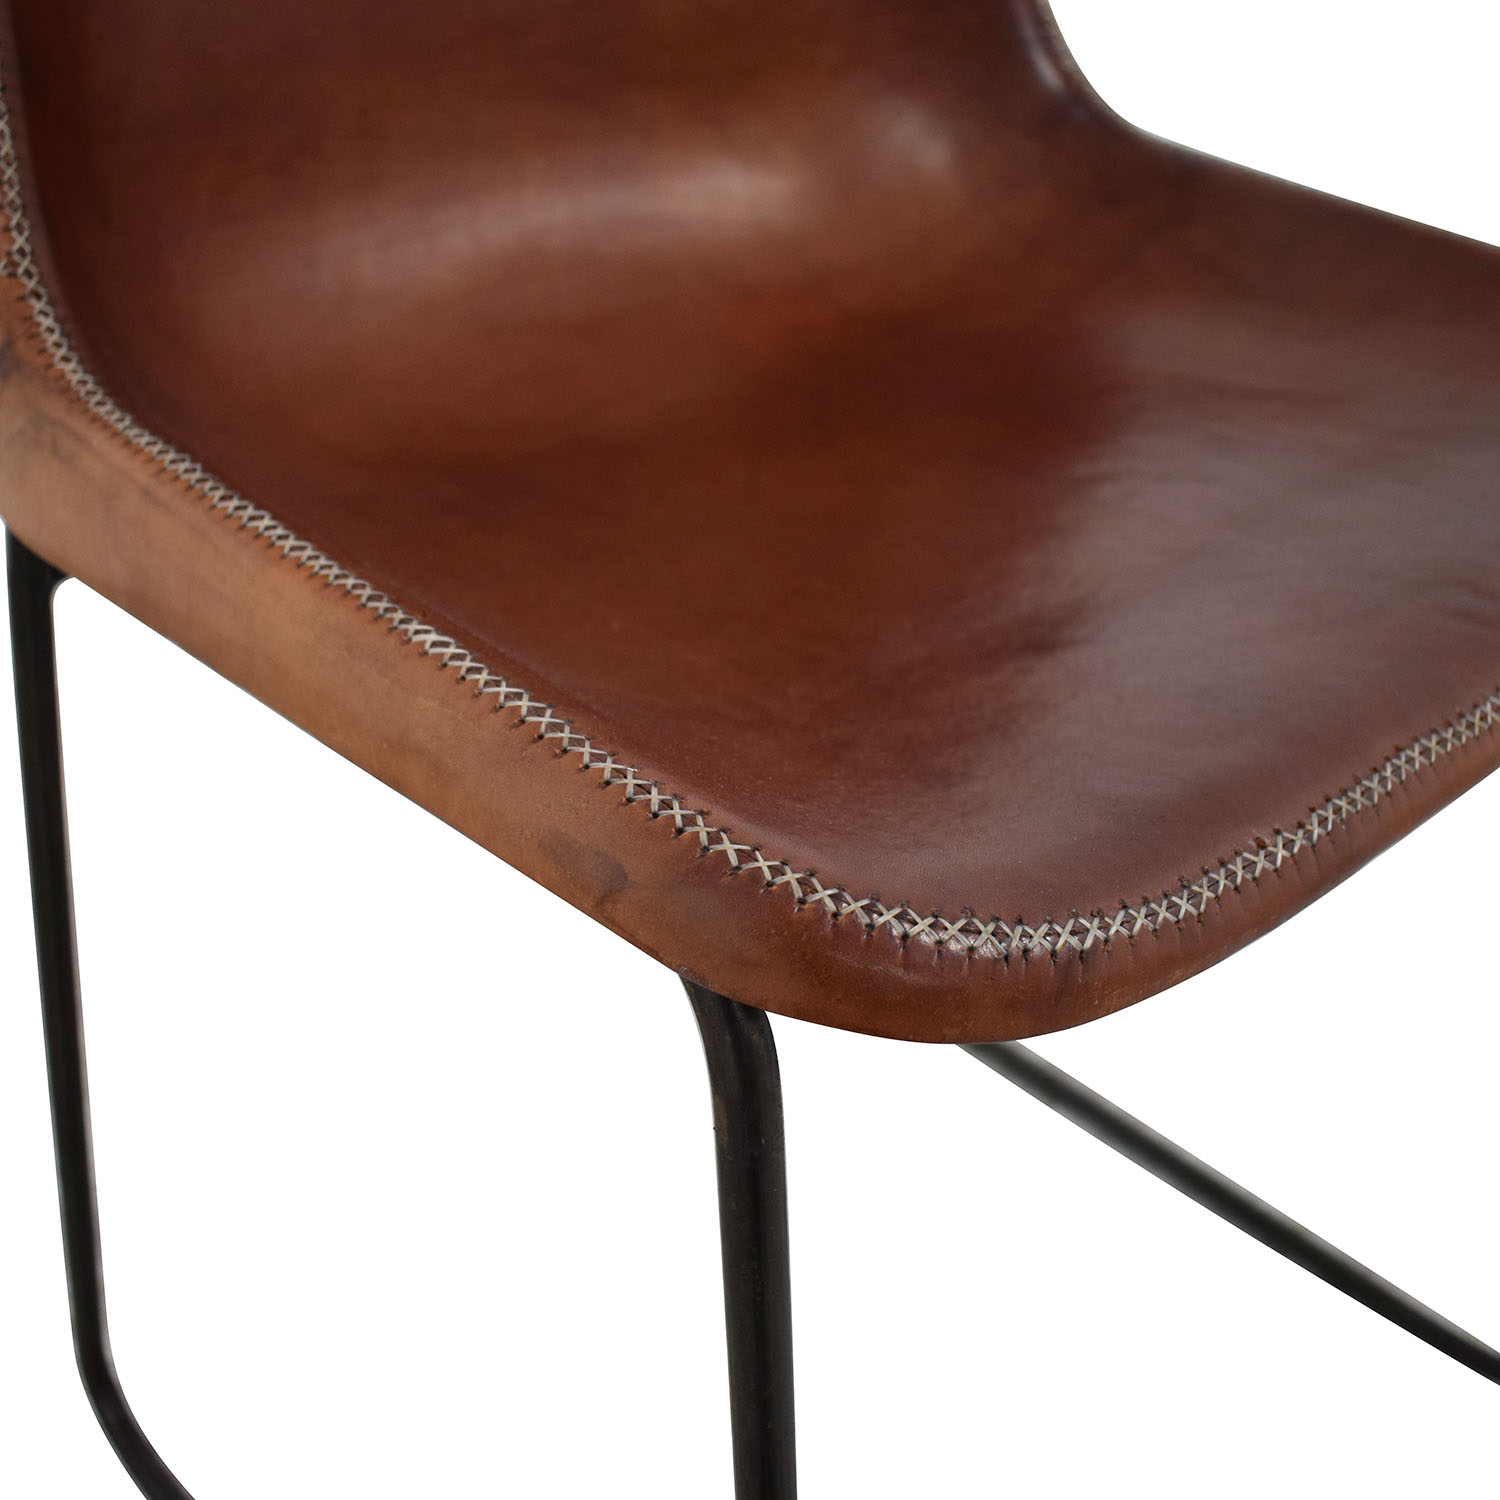 buy ABC Carpet & Home ABC Carpet & Home Giron Brown Leather Chair online